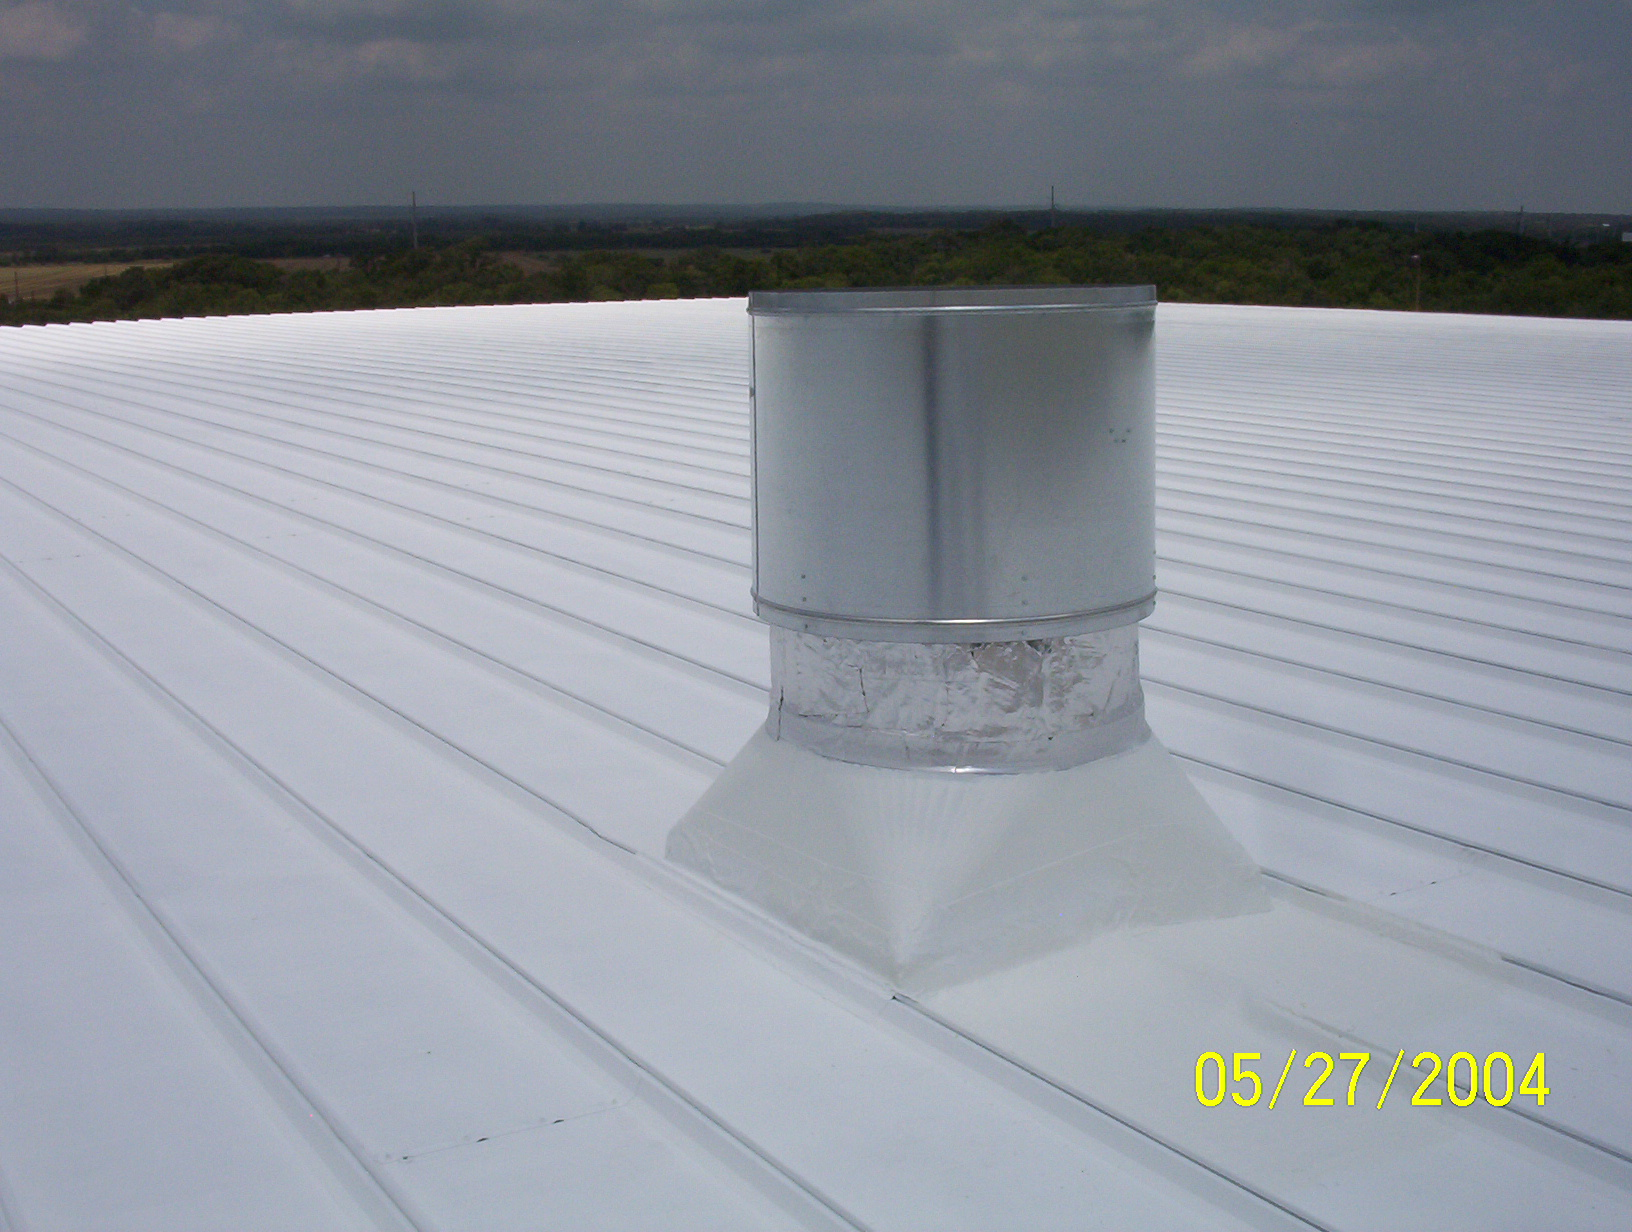 Vent and roof coated